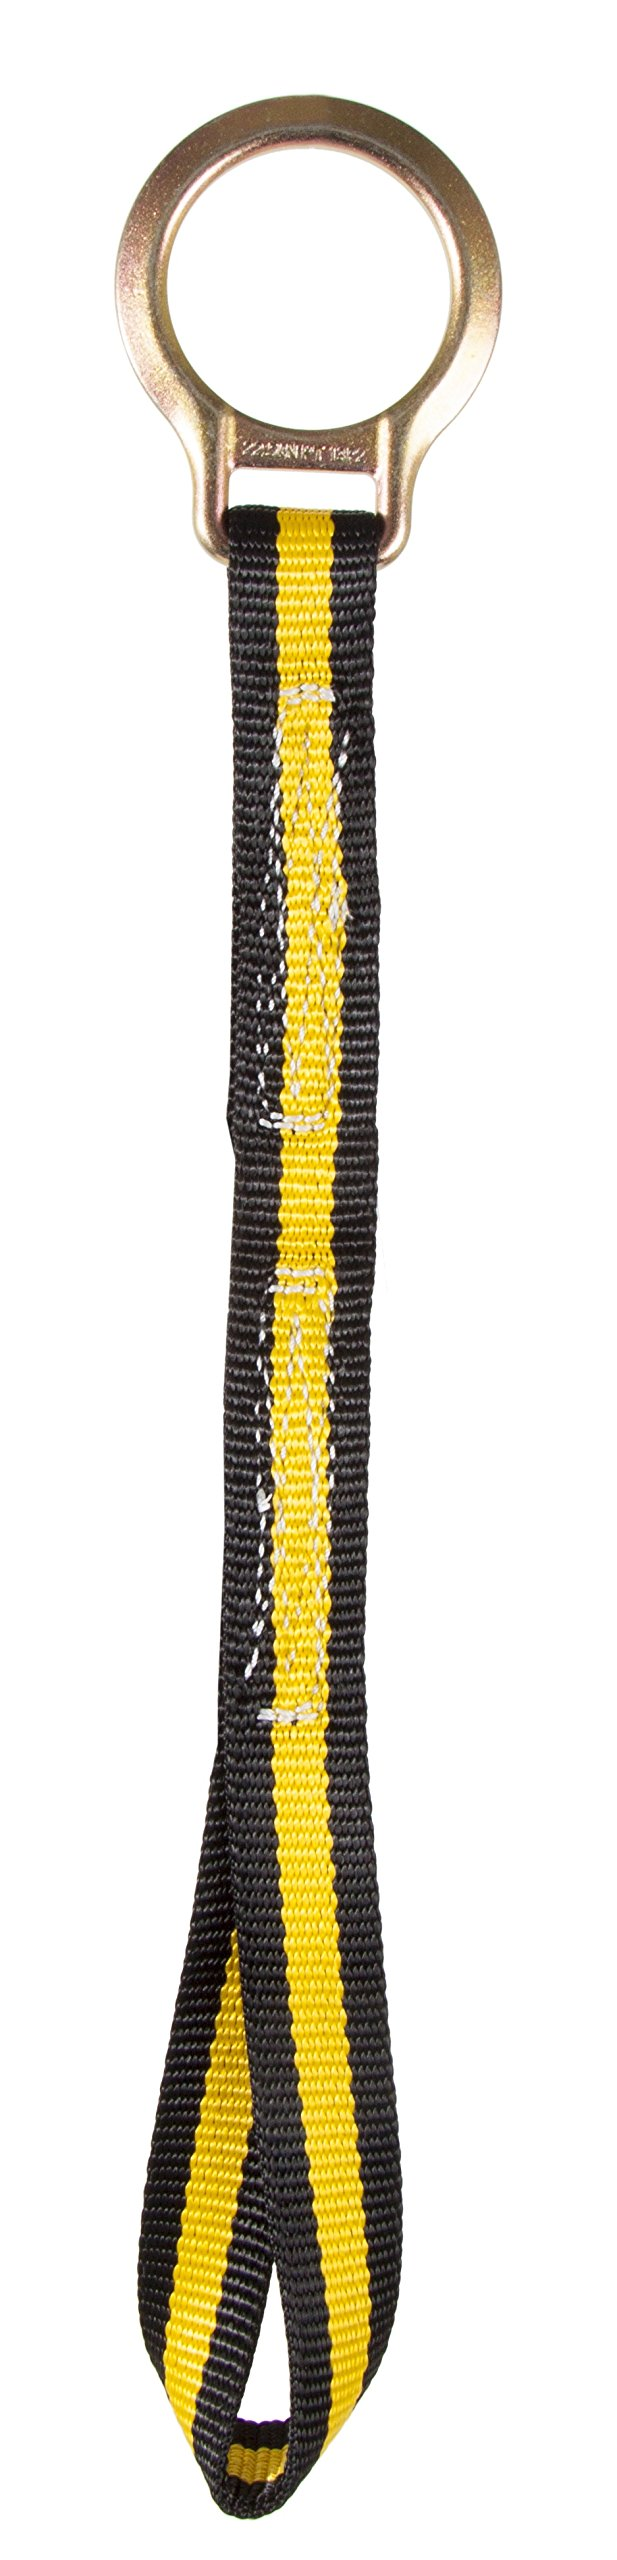 Guardian Fall Protection 01122 18-Inch Extension Lanyard with Web Loop End